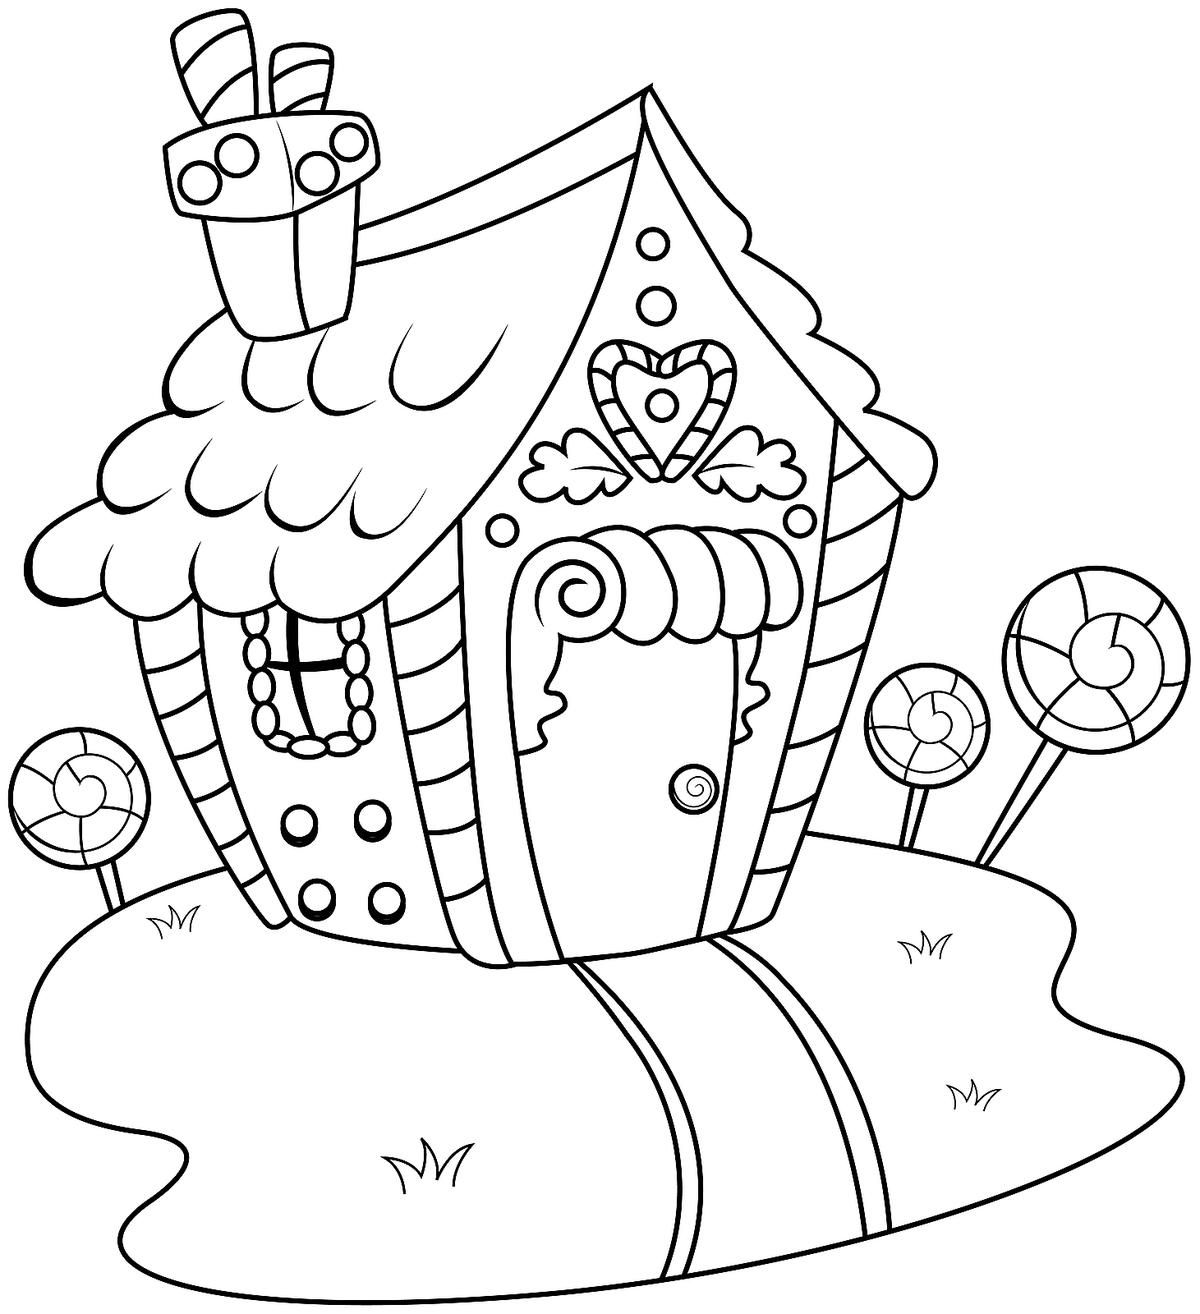 21++ Printable gingerbread house coloring pages information